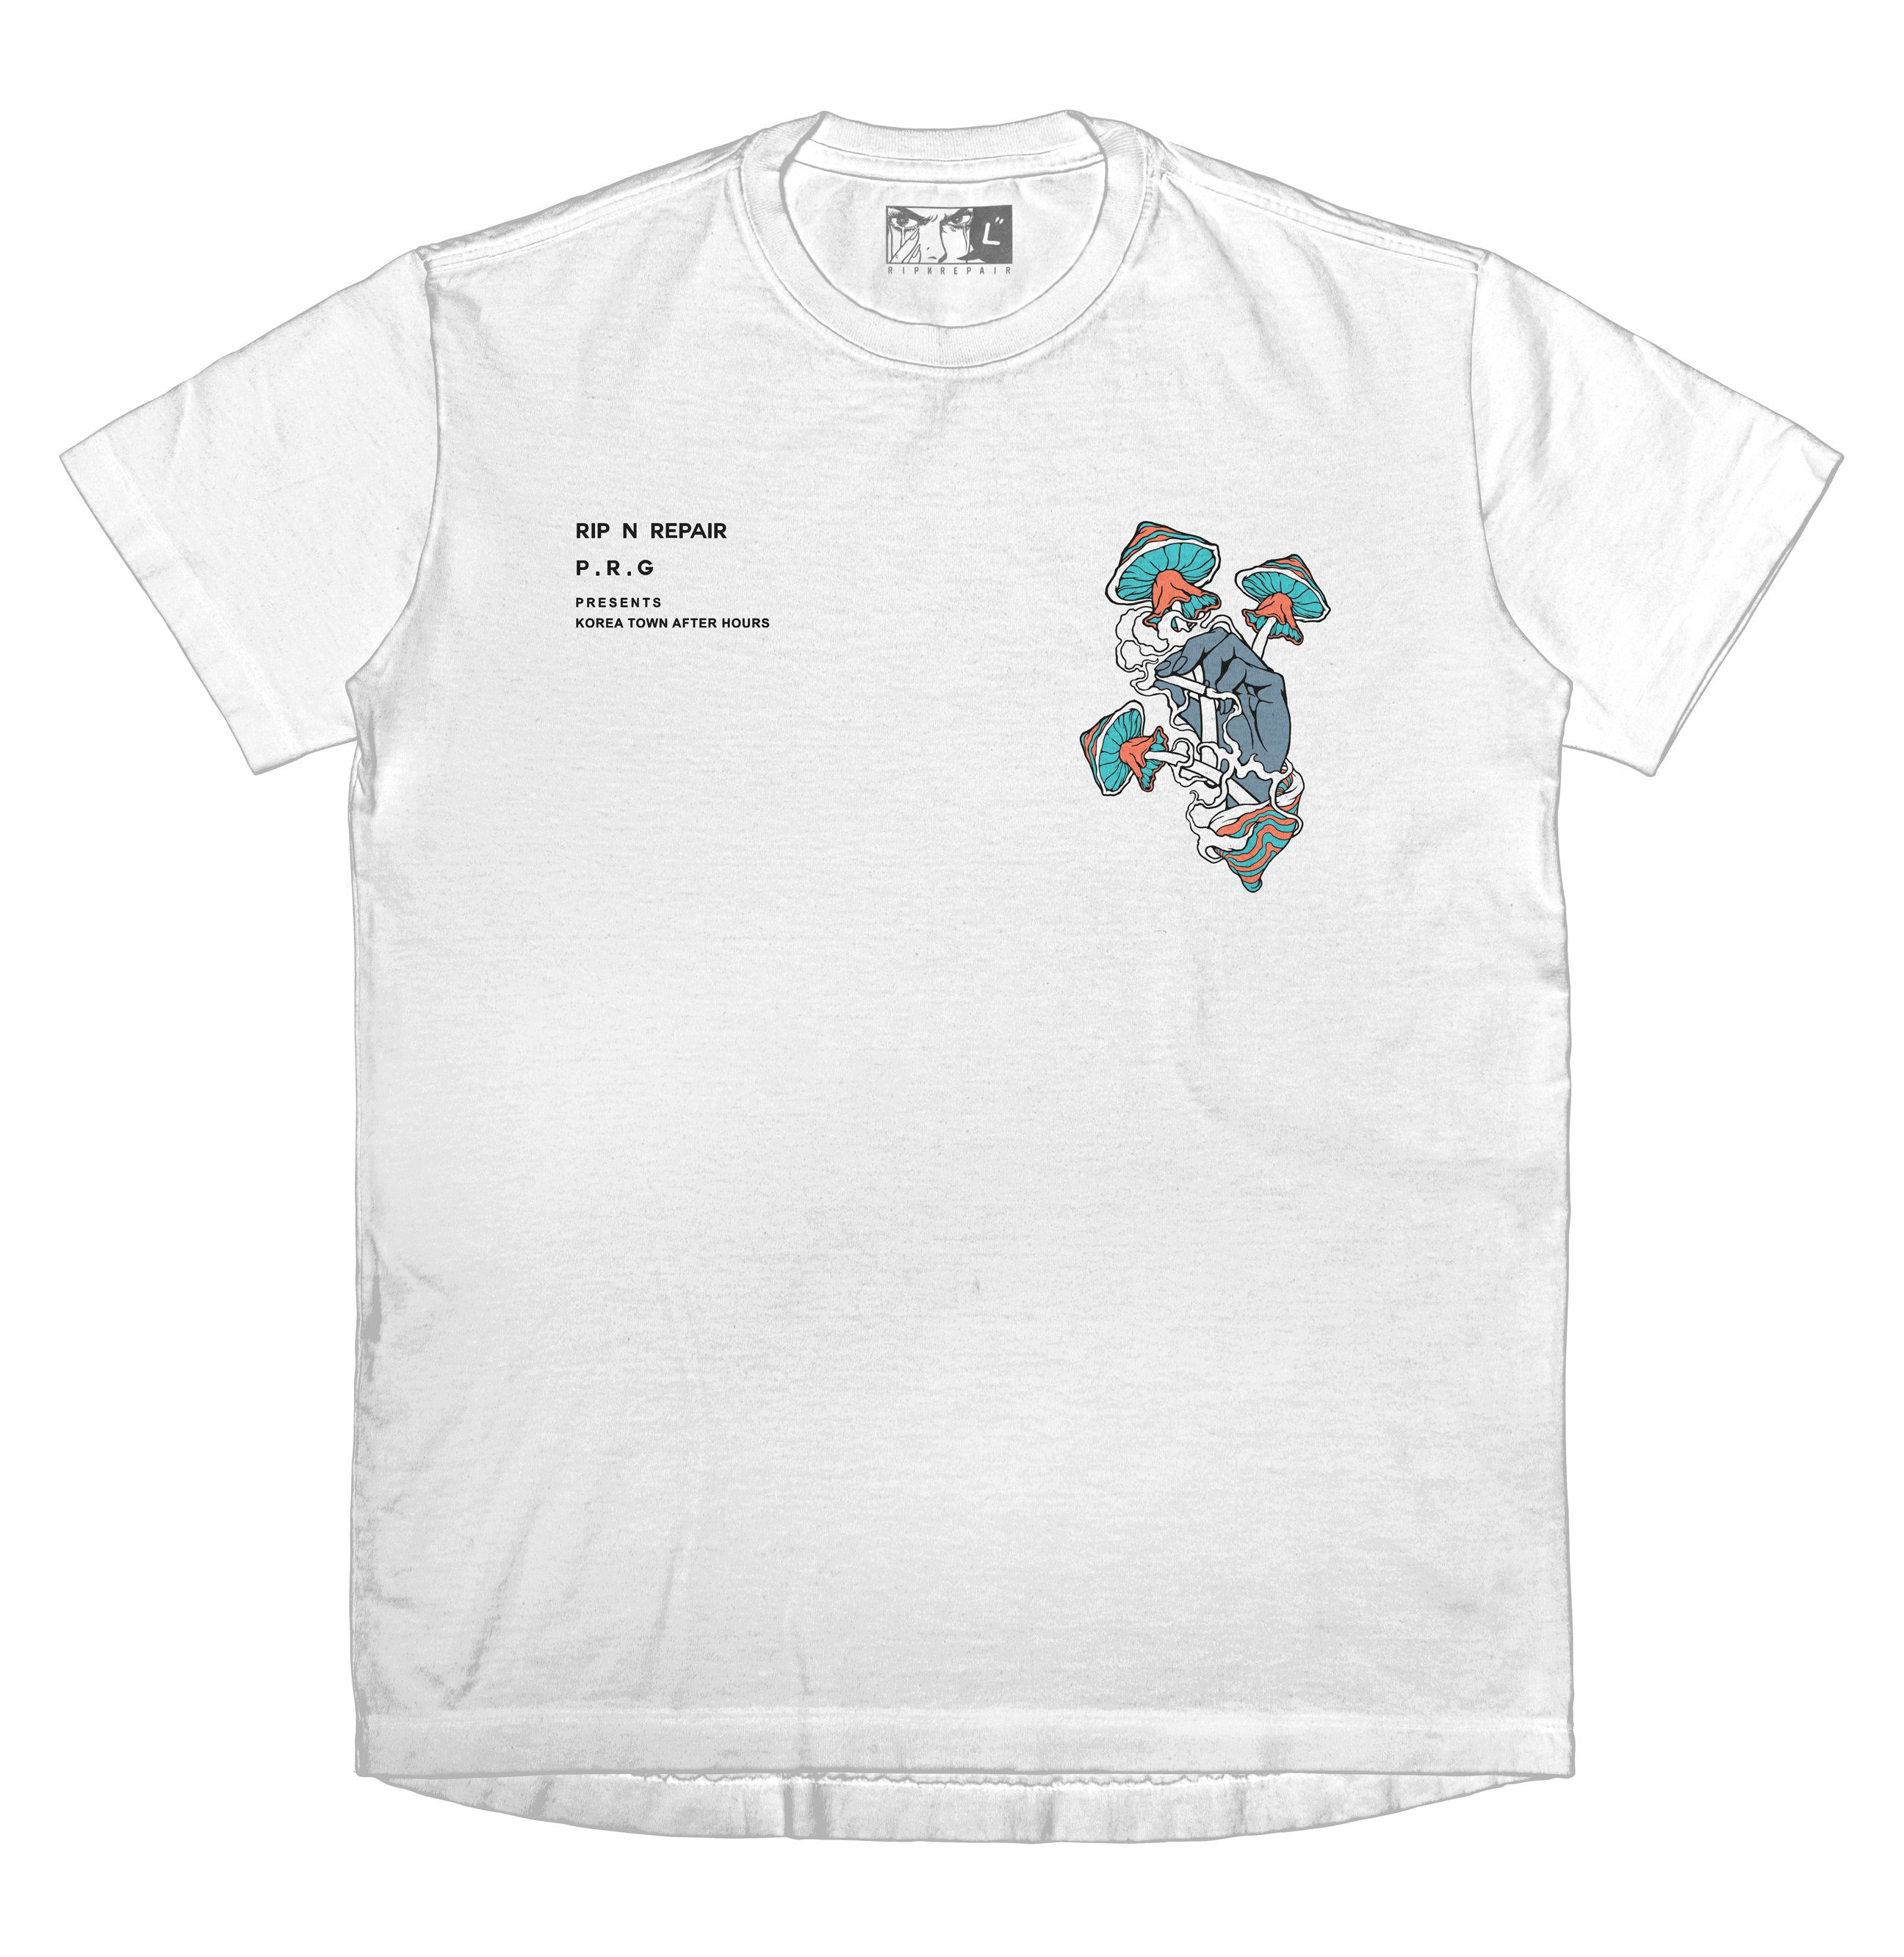 EUPHORIA - T-Shirt (White)